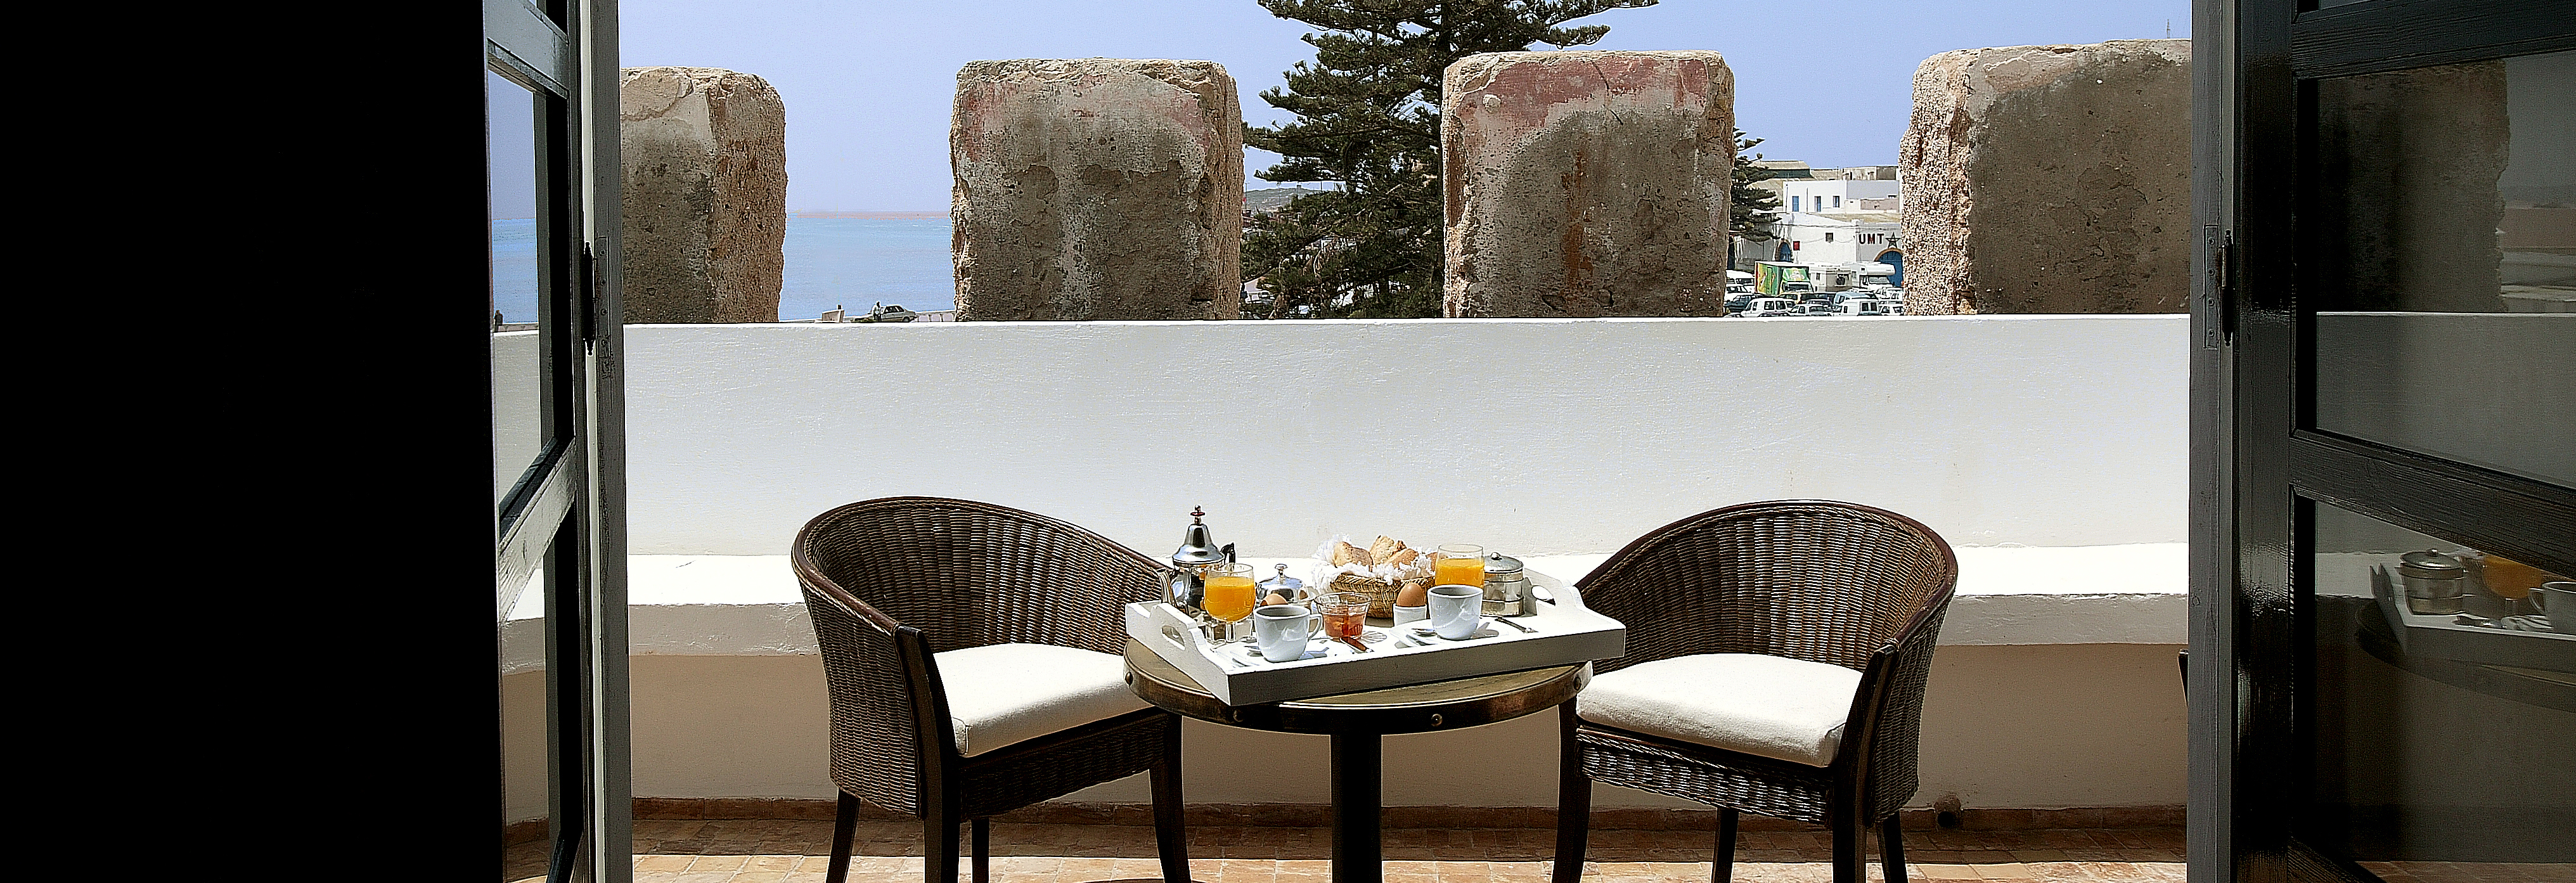 luxury-boutique-hotel-essaouira